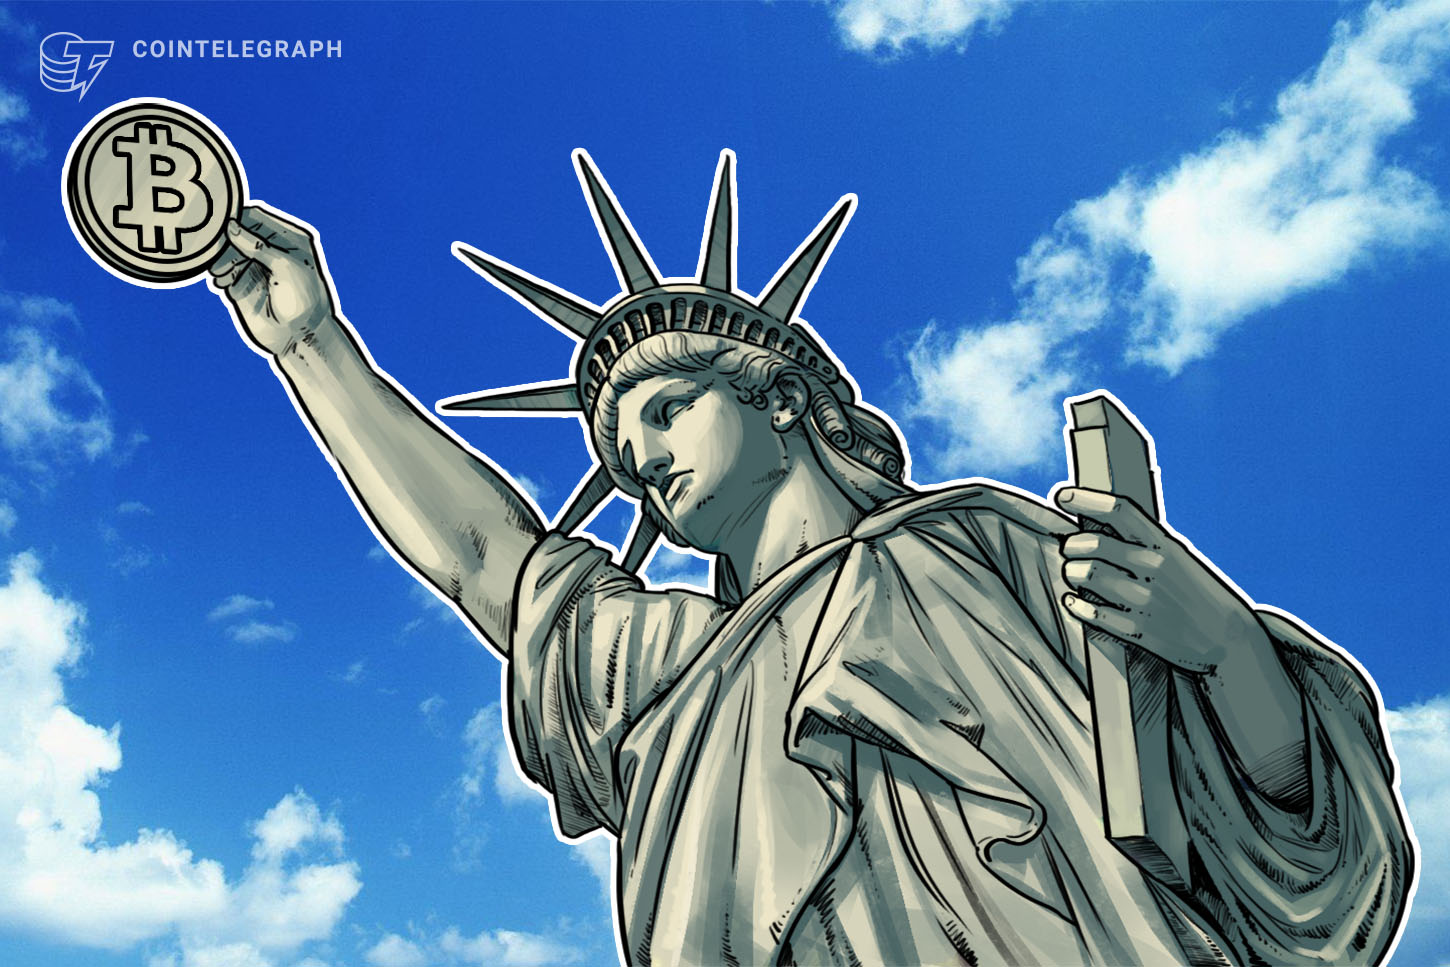 still-so-early-7-of-americans-have-bought-bitcoin-study-finds